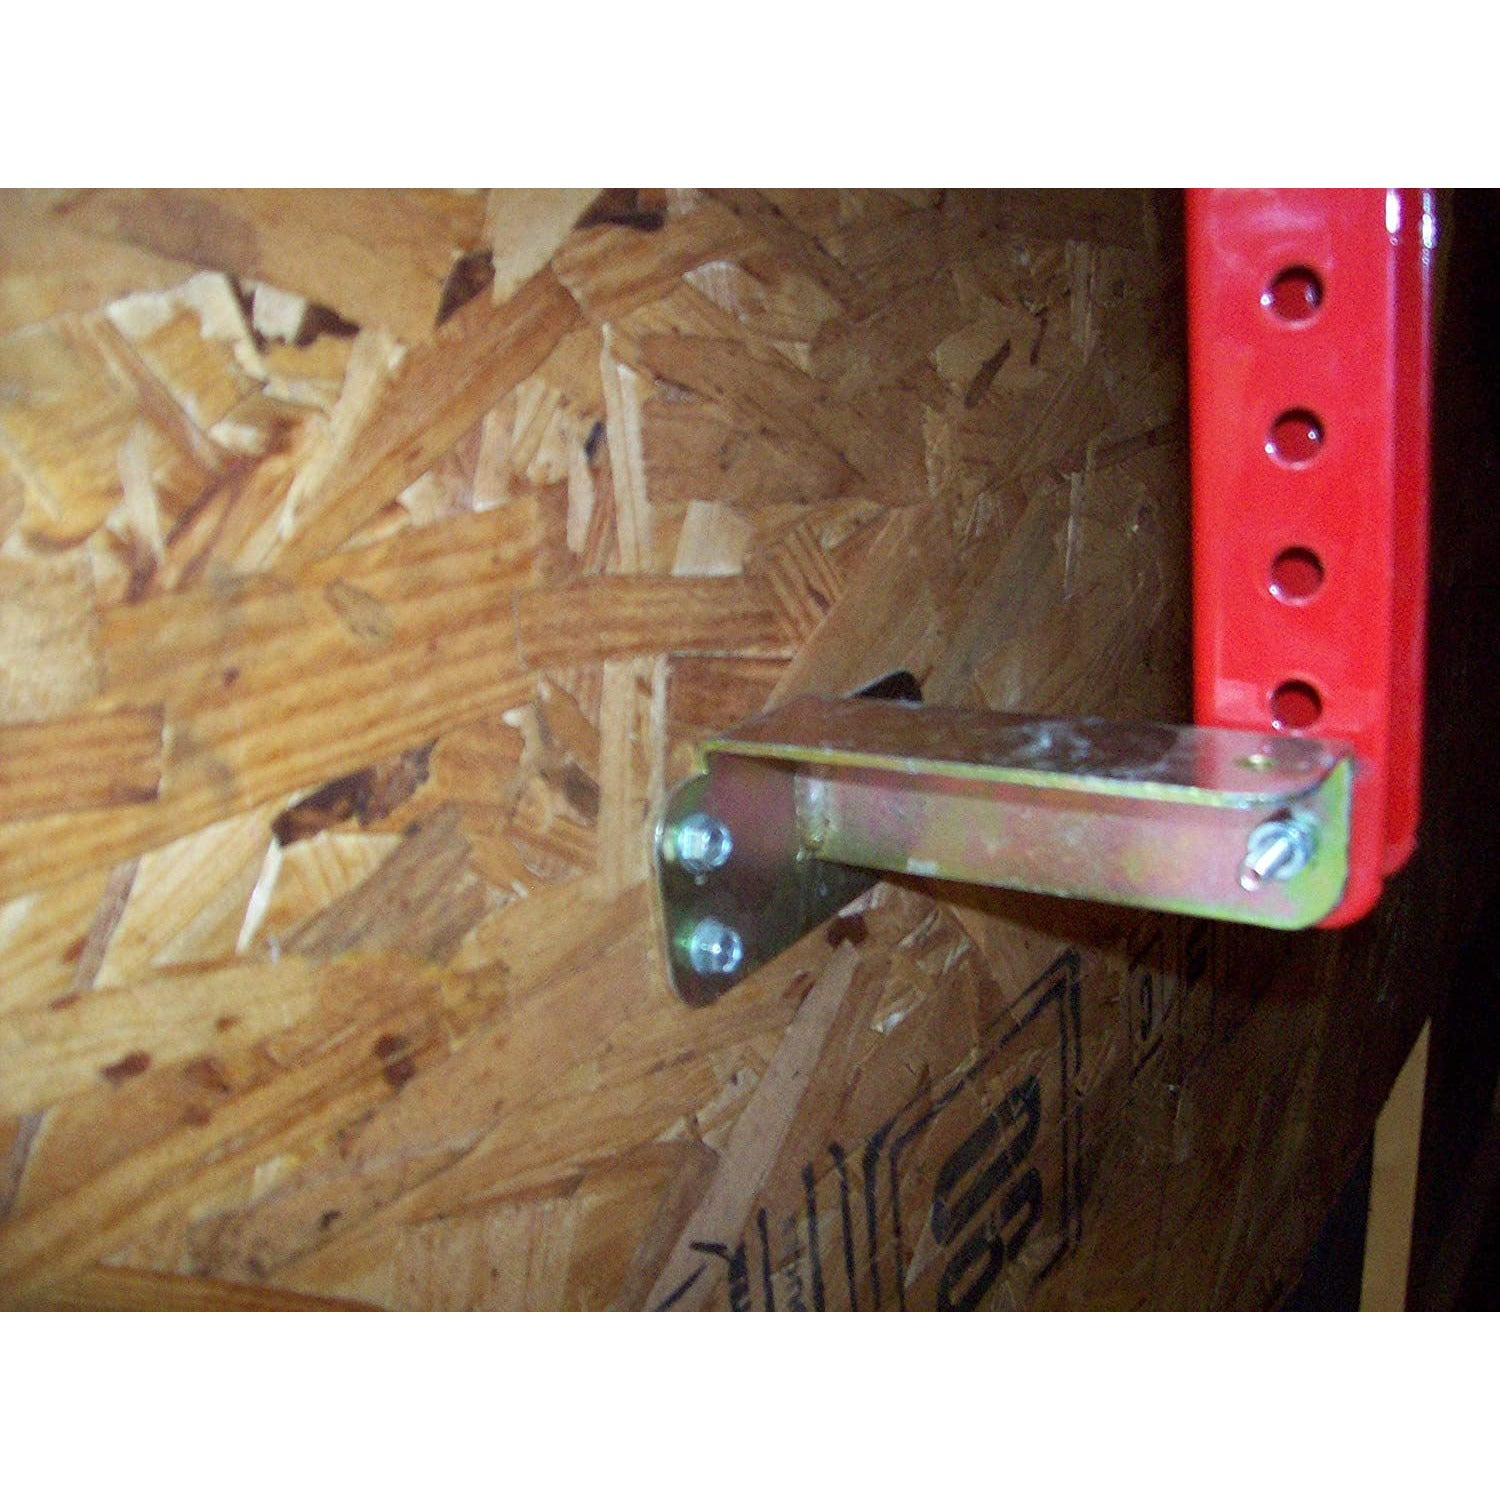 Trimmer Rack Bracket Wall Mount Kit for Enclosed Trailers